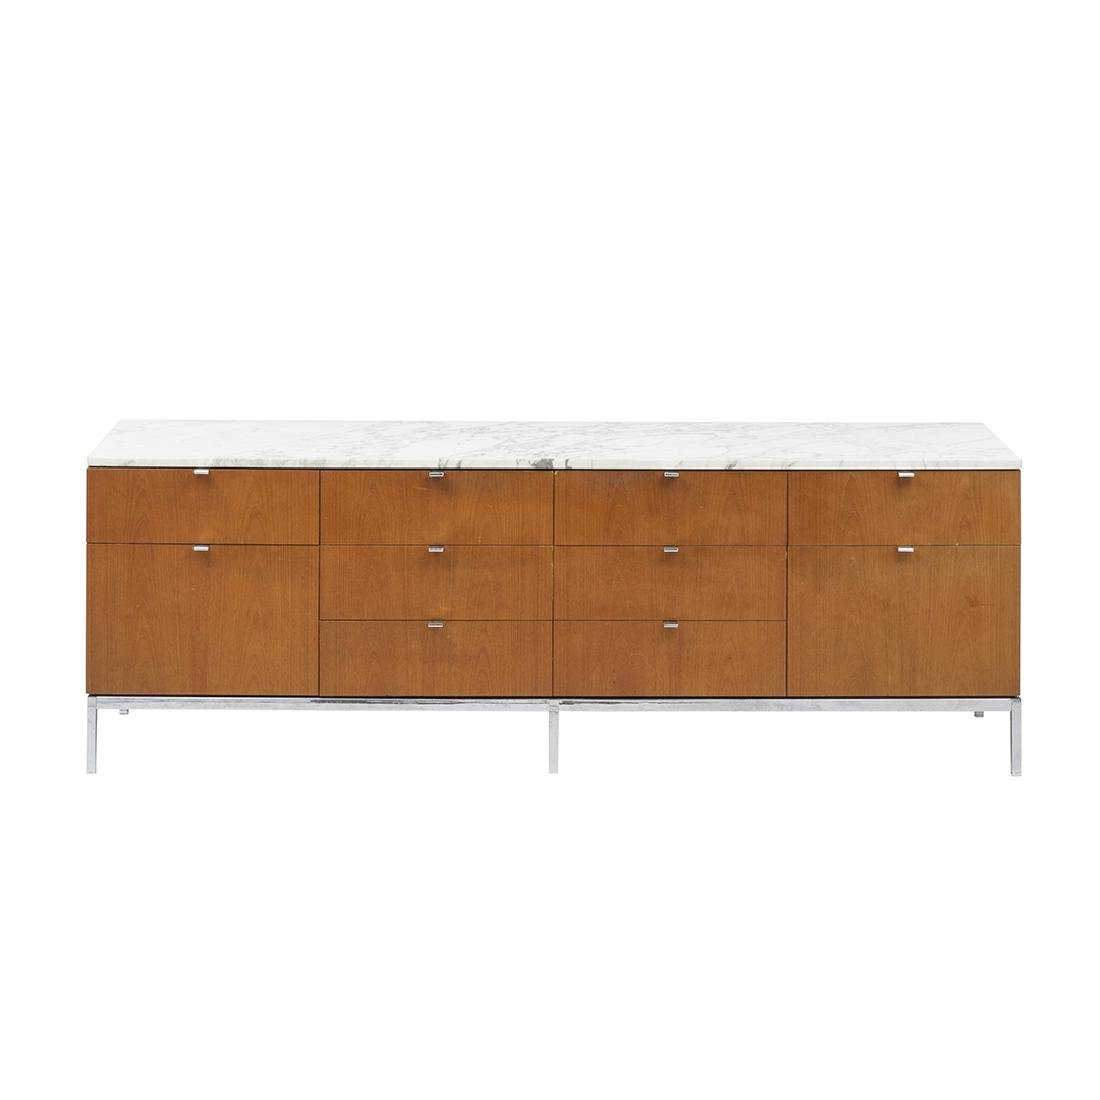 Florence Knoll Marble Credenza